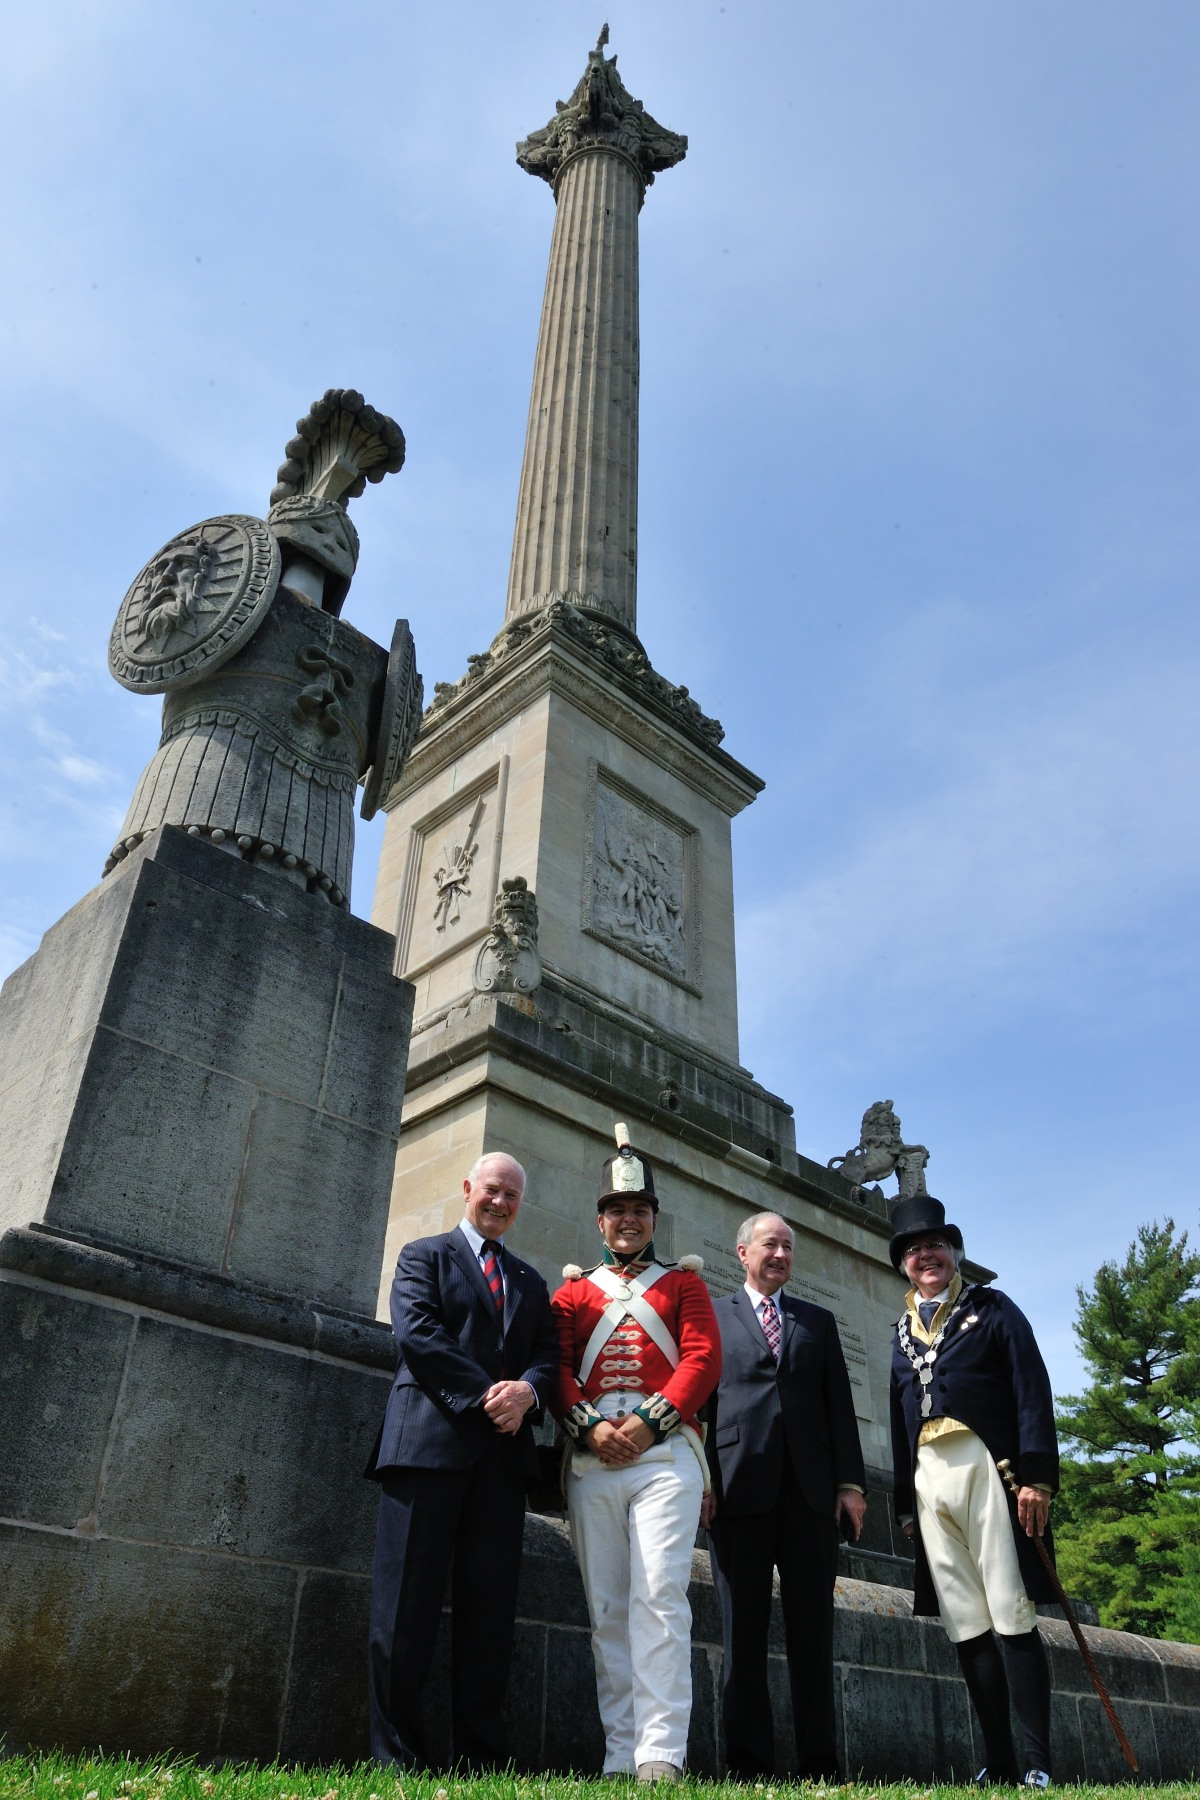 The Governor General then visited Brock's Monument, a 56-metre column dedicated to Major-General Sir Isaac Brock, one of Canada's heroes of the War of 1812, who died during the Battle of Queenston Heights. He was joined by Nathaniel Metherel Supervisor and Costume Interpreter the Honourable Rob Nicholson, Minister of Justice and His Worship Dave Eke, Lord Mayor of Niagara-on-the-Lake.